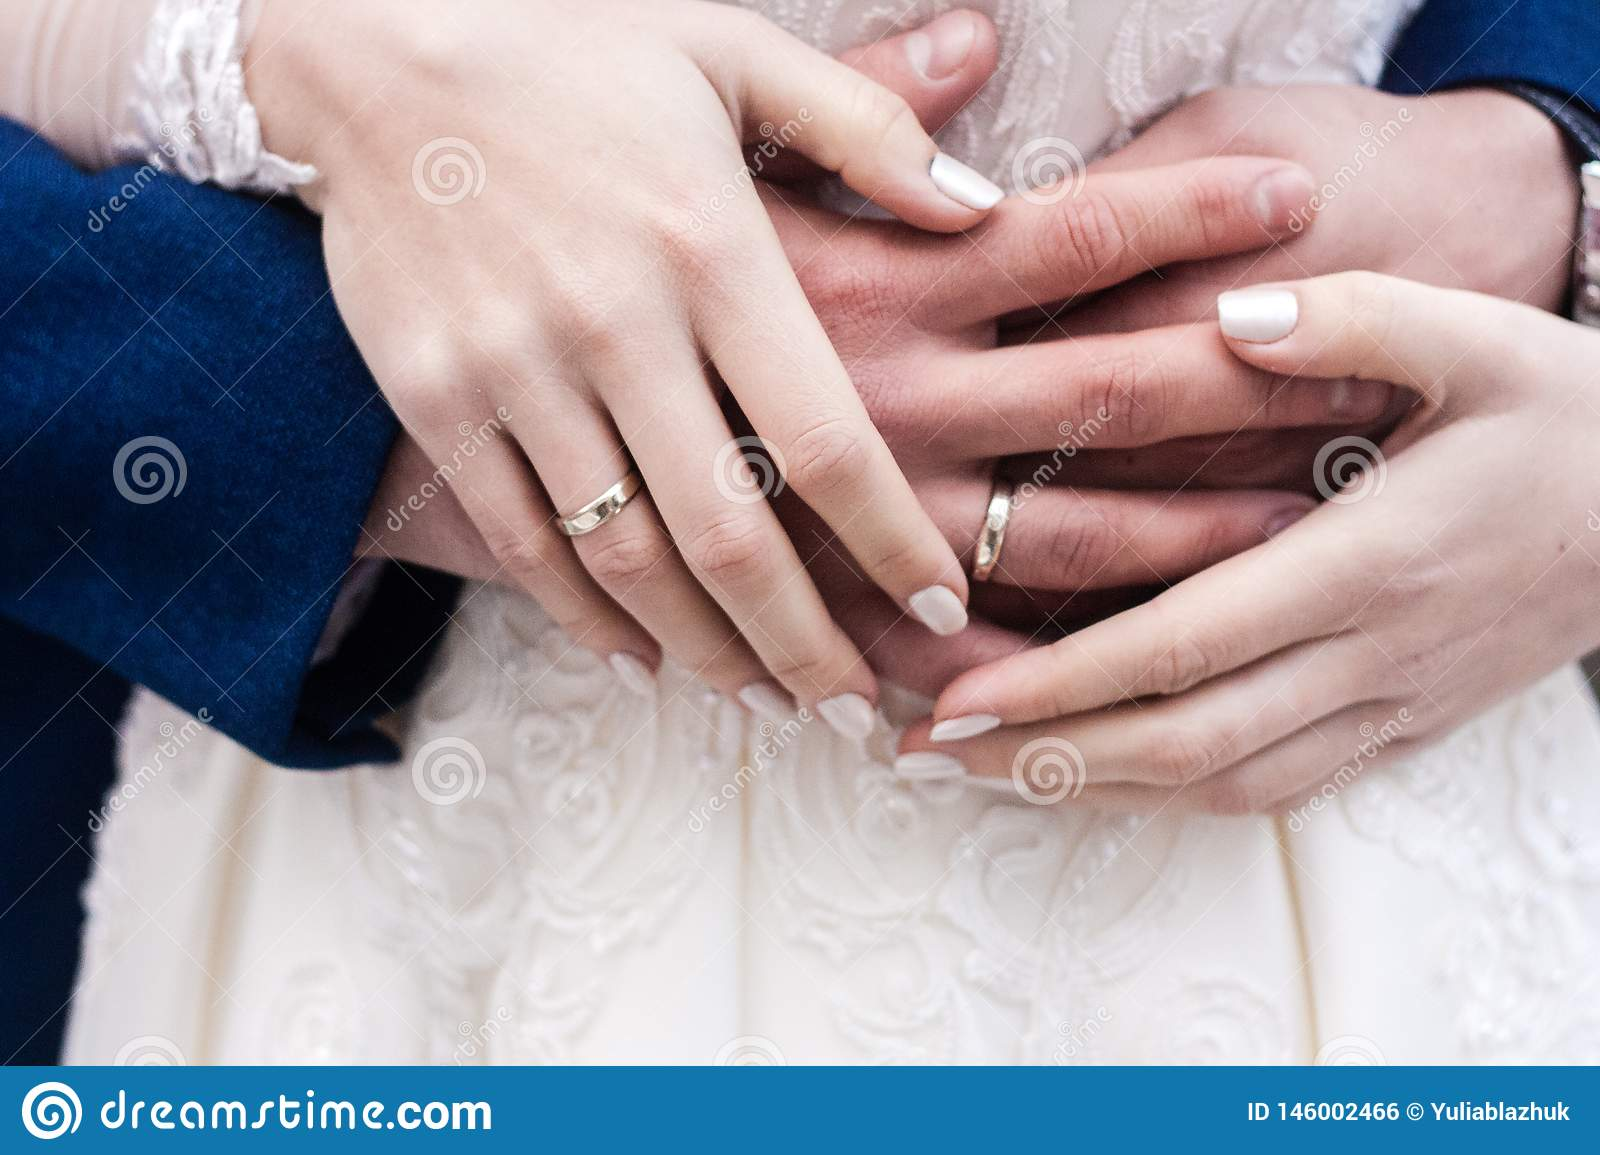 Hands of bride and groom with rings close up